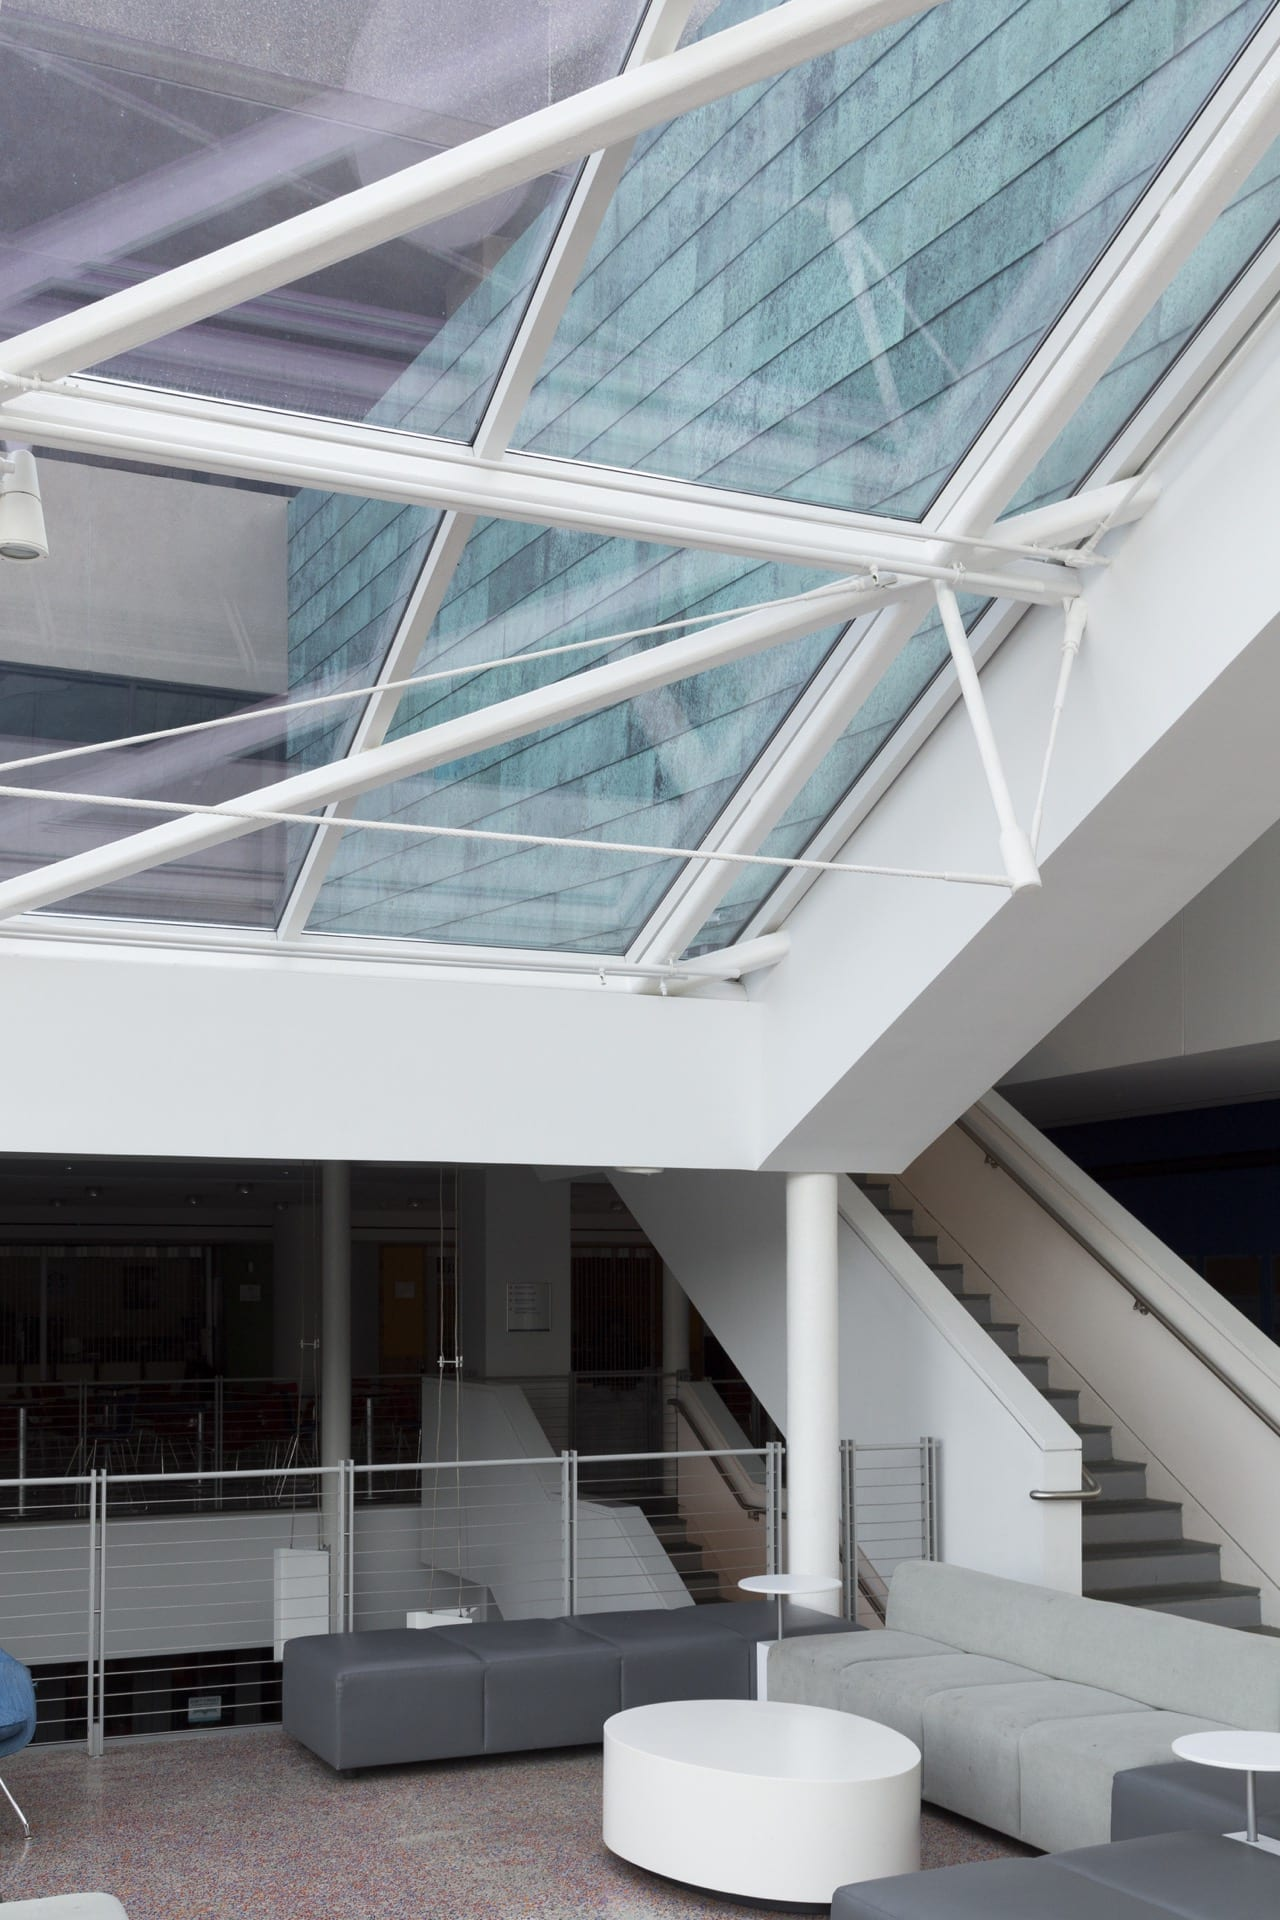 Interior view of the Star Blue™ copper panels at SUNY New Paltz Student Union Building